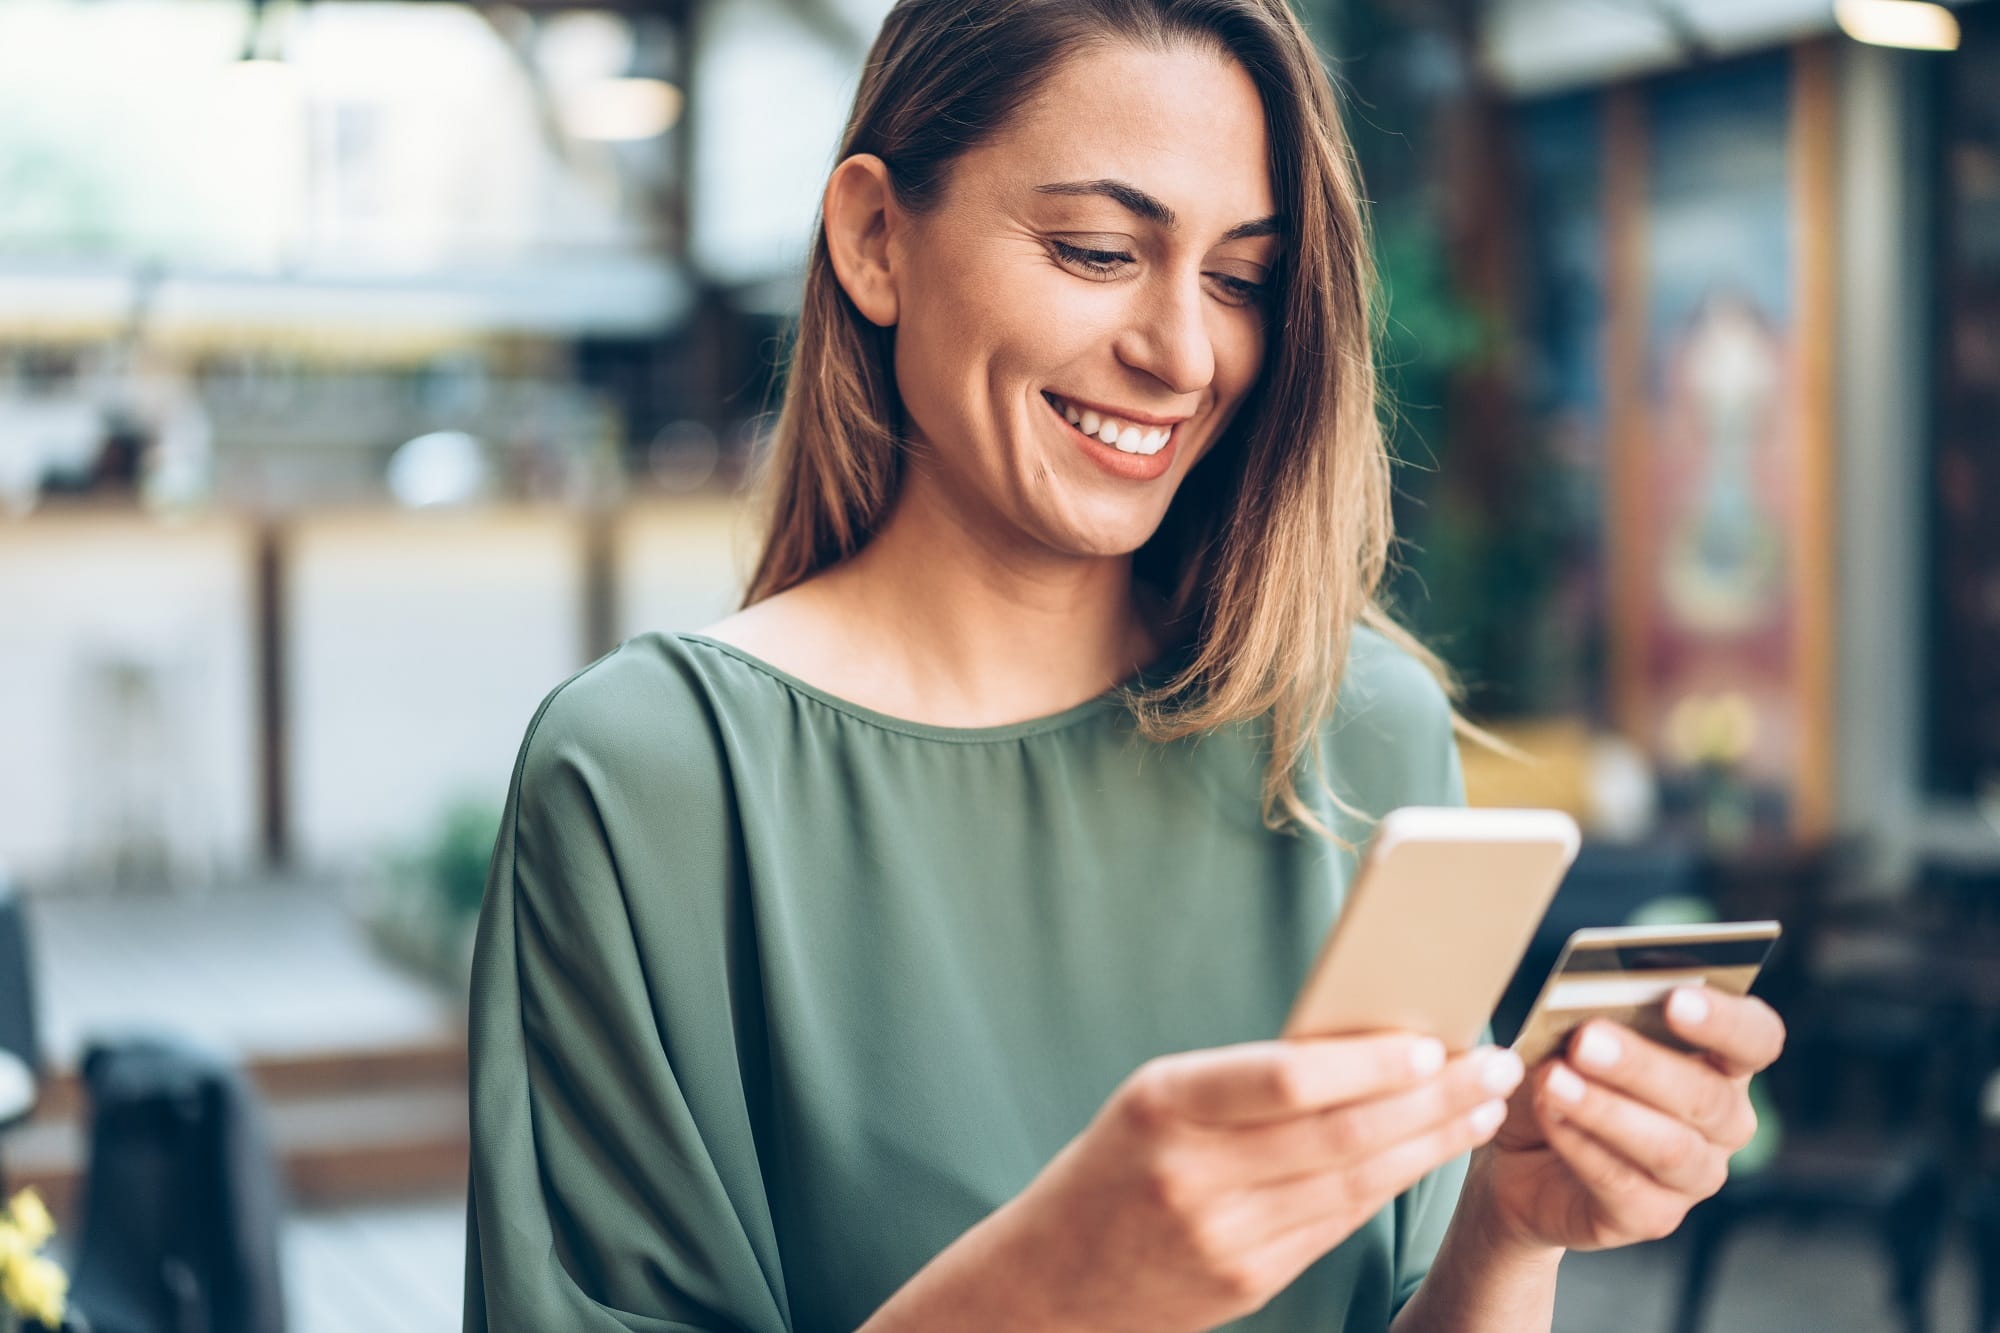 Young woman shopping online in cafe using smartphone and credit card